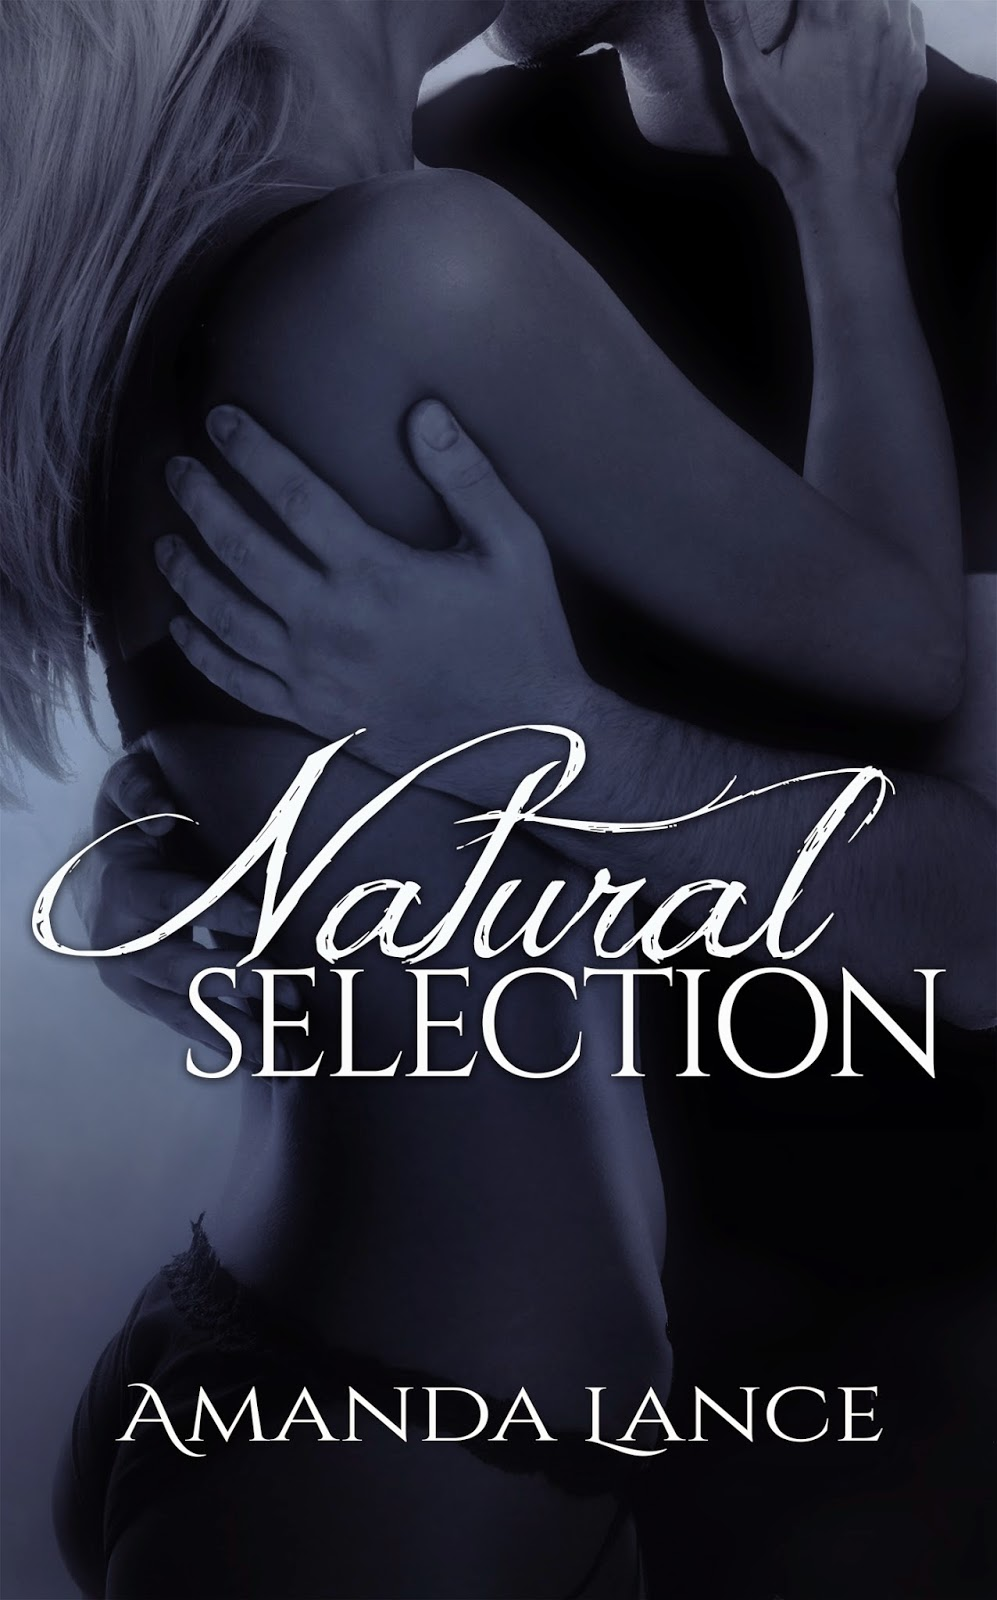 https://www.goodreads.com/book/show/21782409-natural-selection